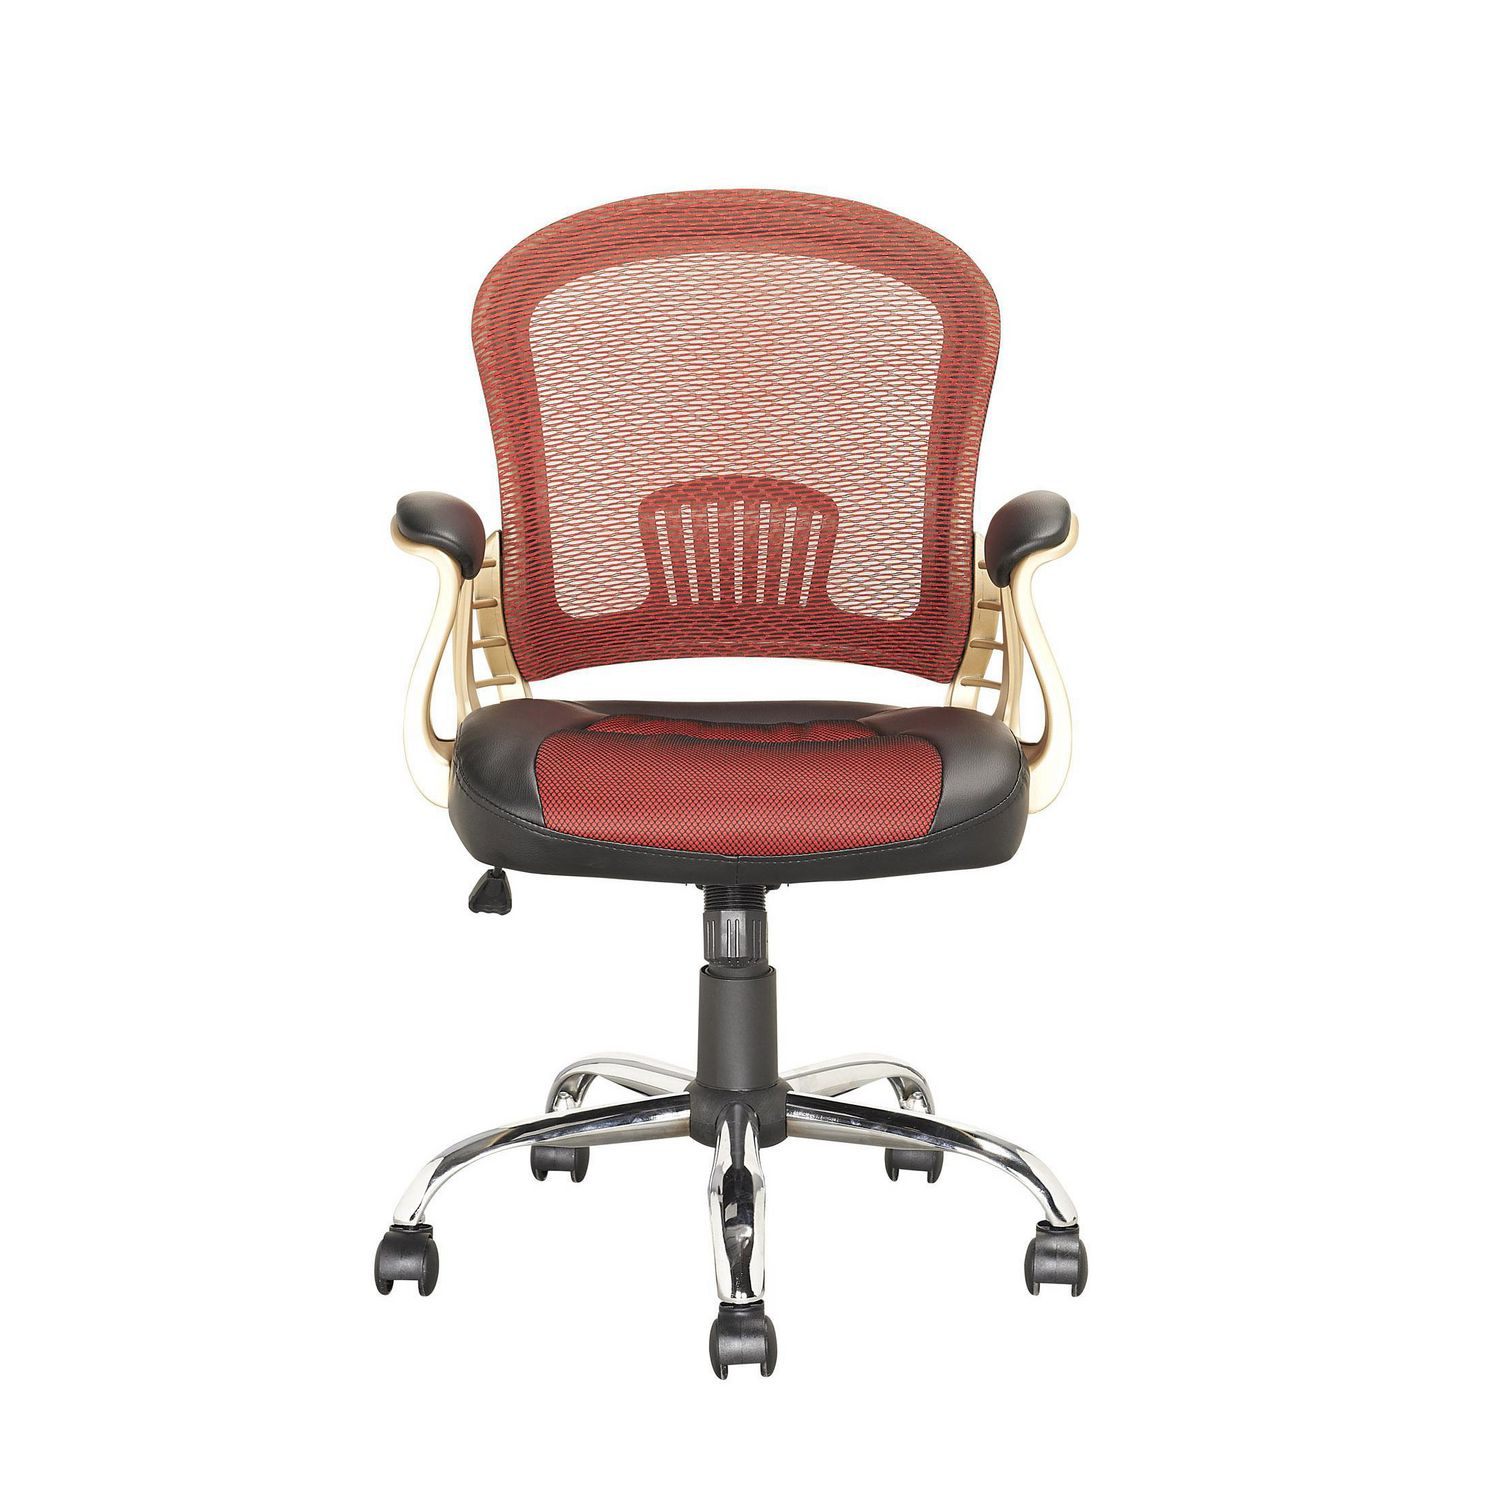 CorLiving LOF 258 O Executive fice Chair in Black Leatherette